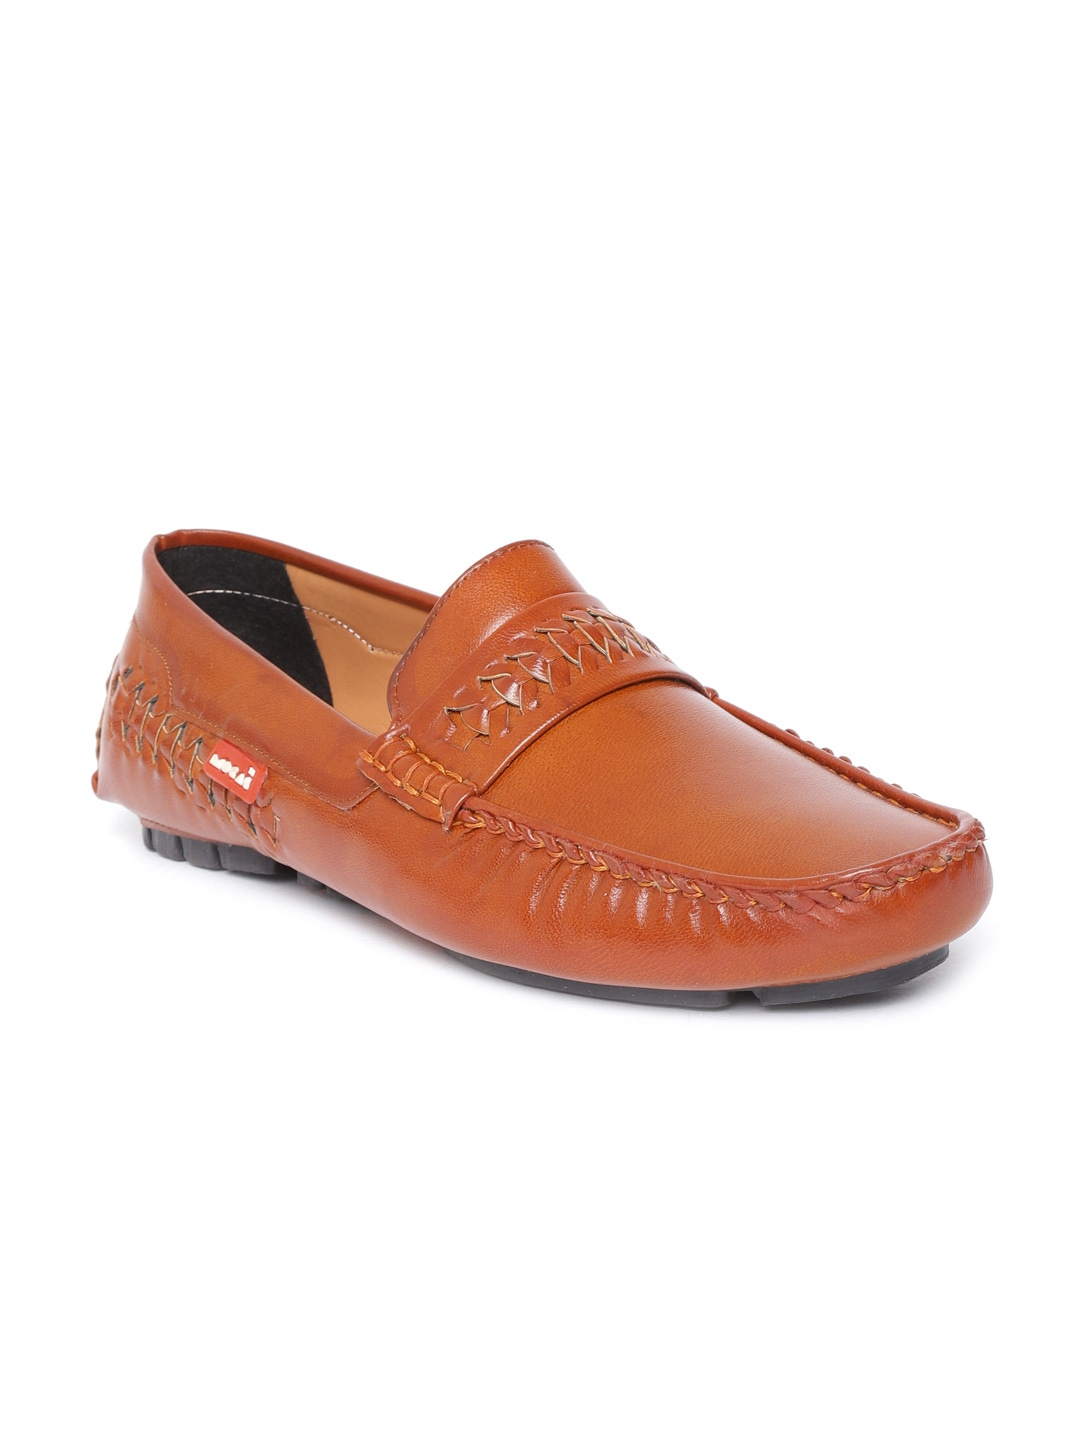 7a6432c9315c Driving Shoes - Buy Driving Shoes online in India